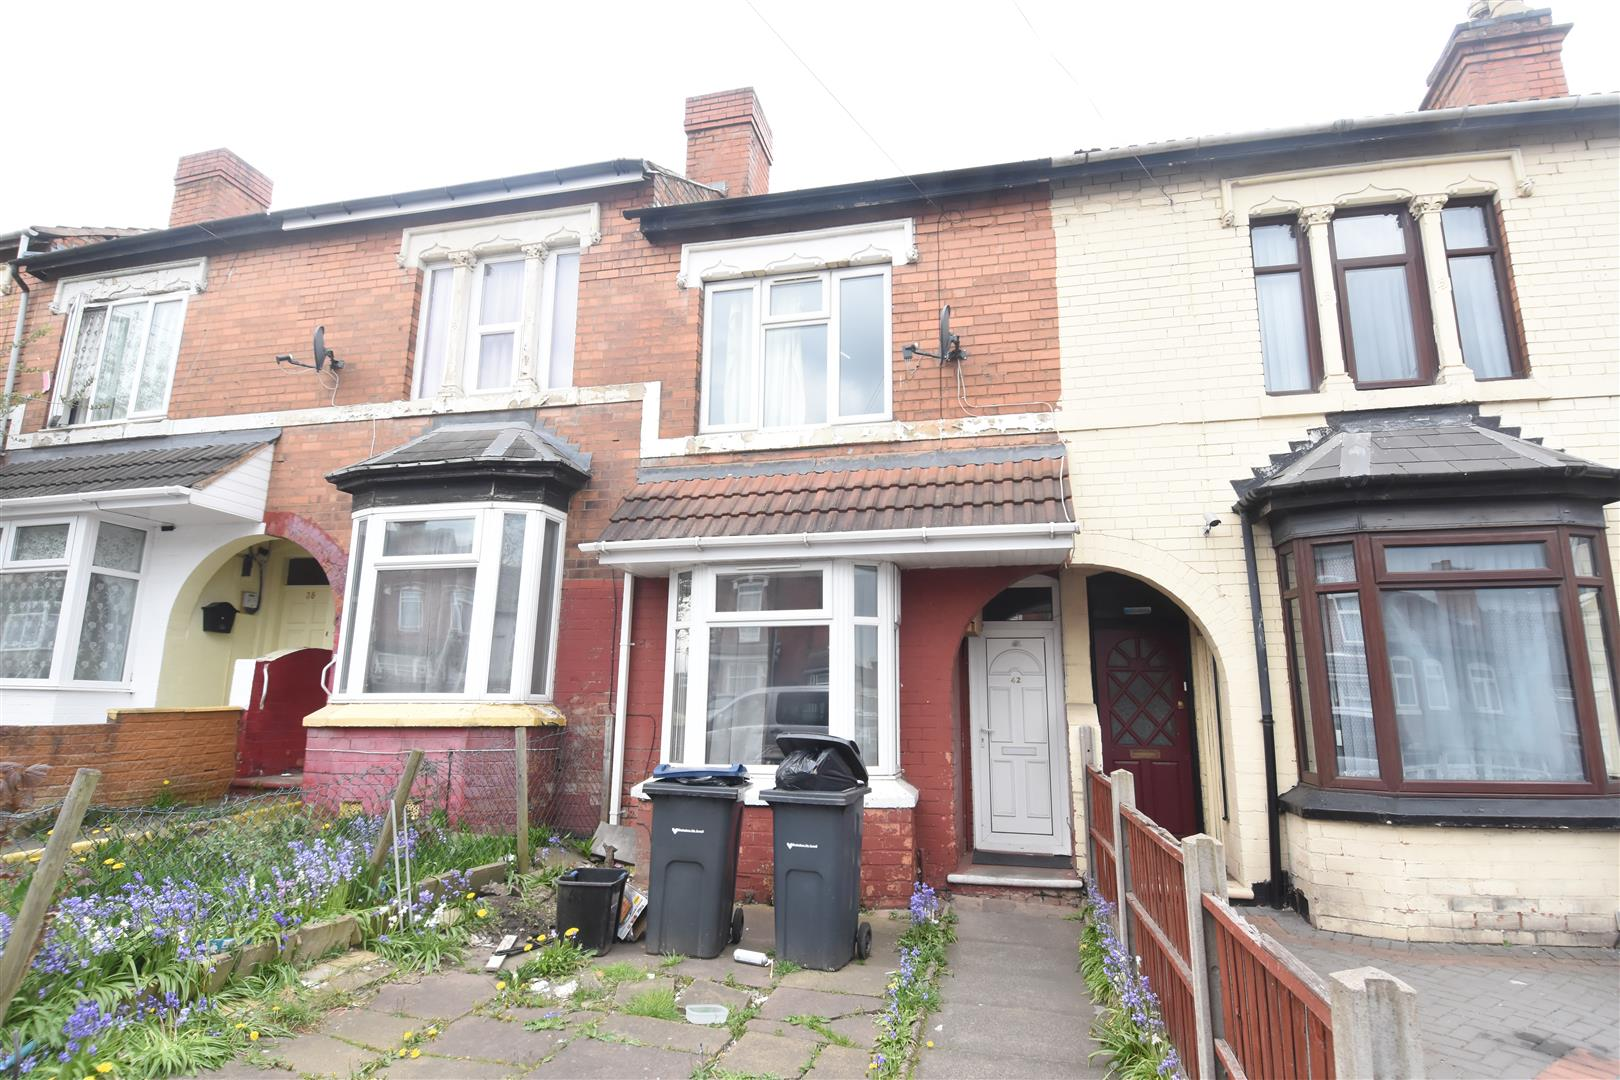 3 bed house for sale in Asquith Road, Birmingham, B8